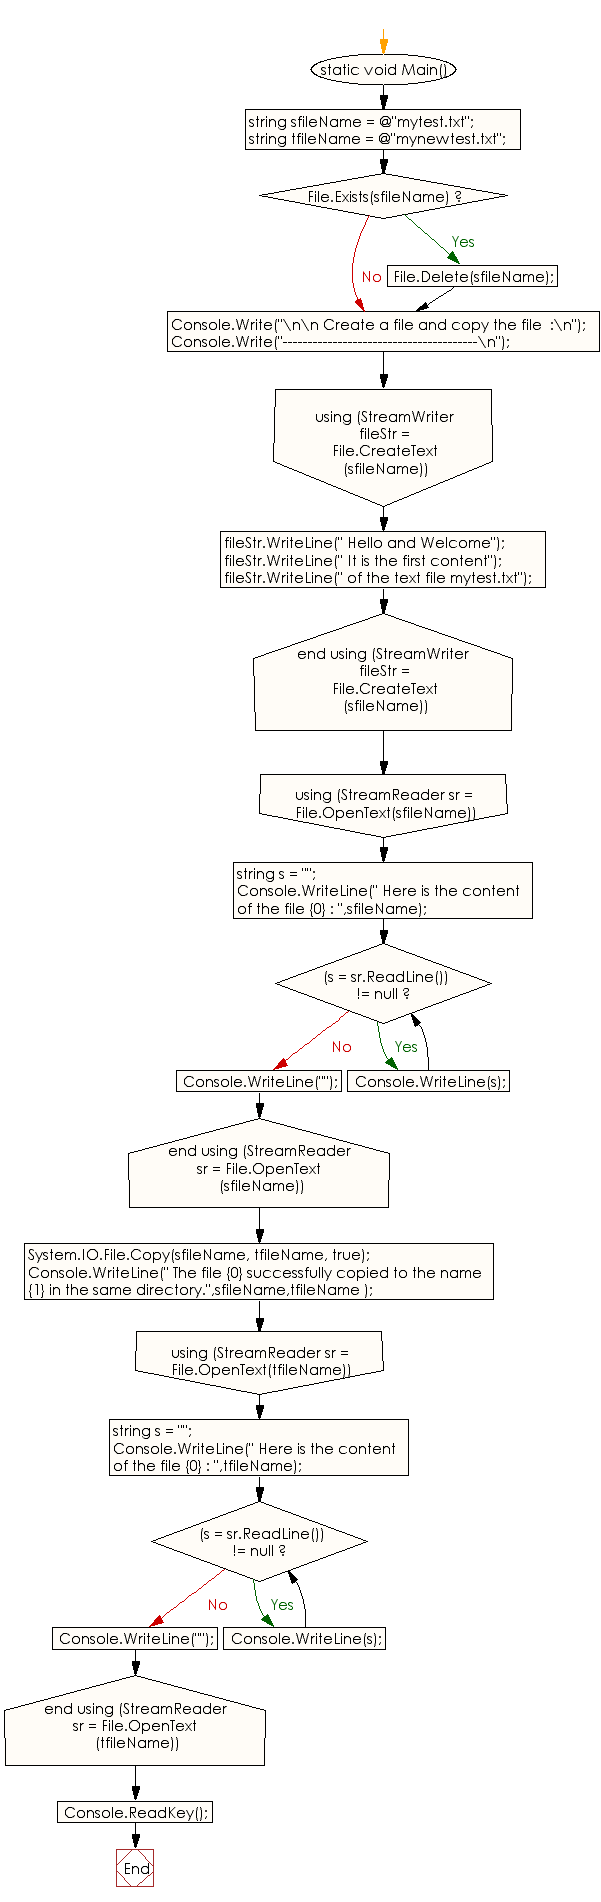 Flowchart: C# Sharp Exercises - Create a file and copy the file